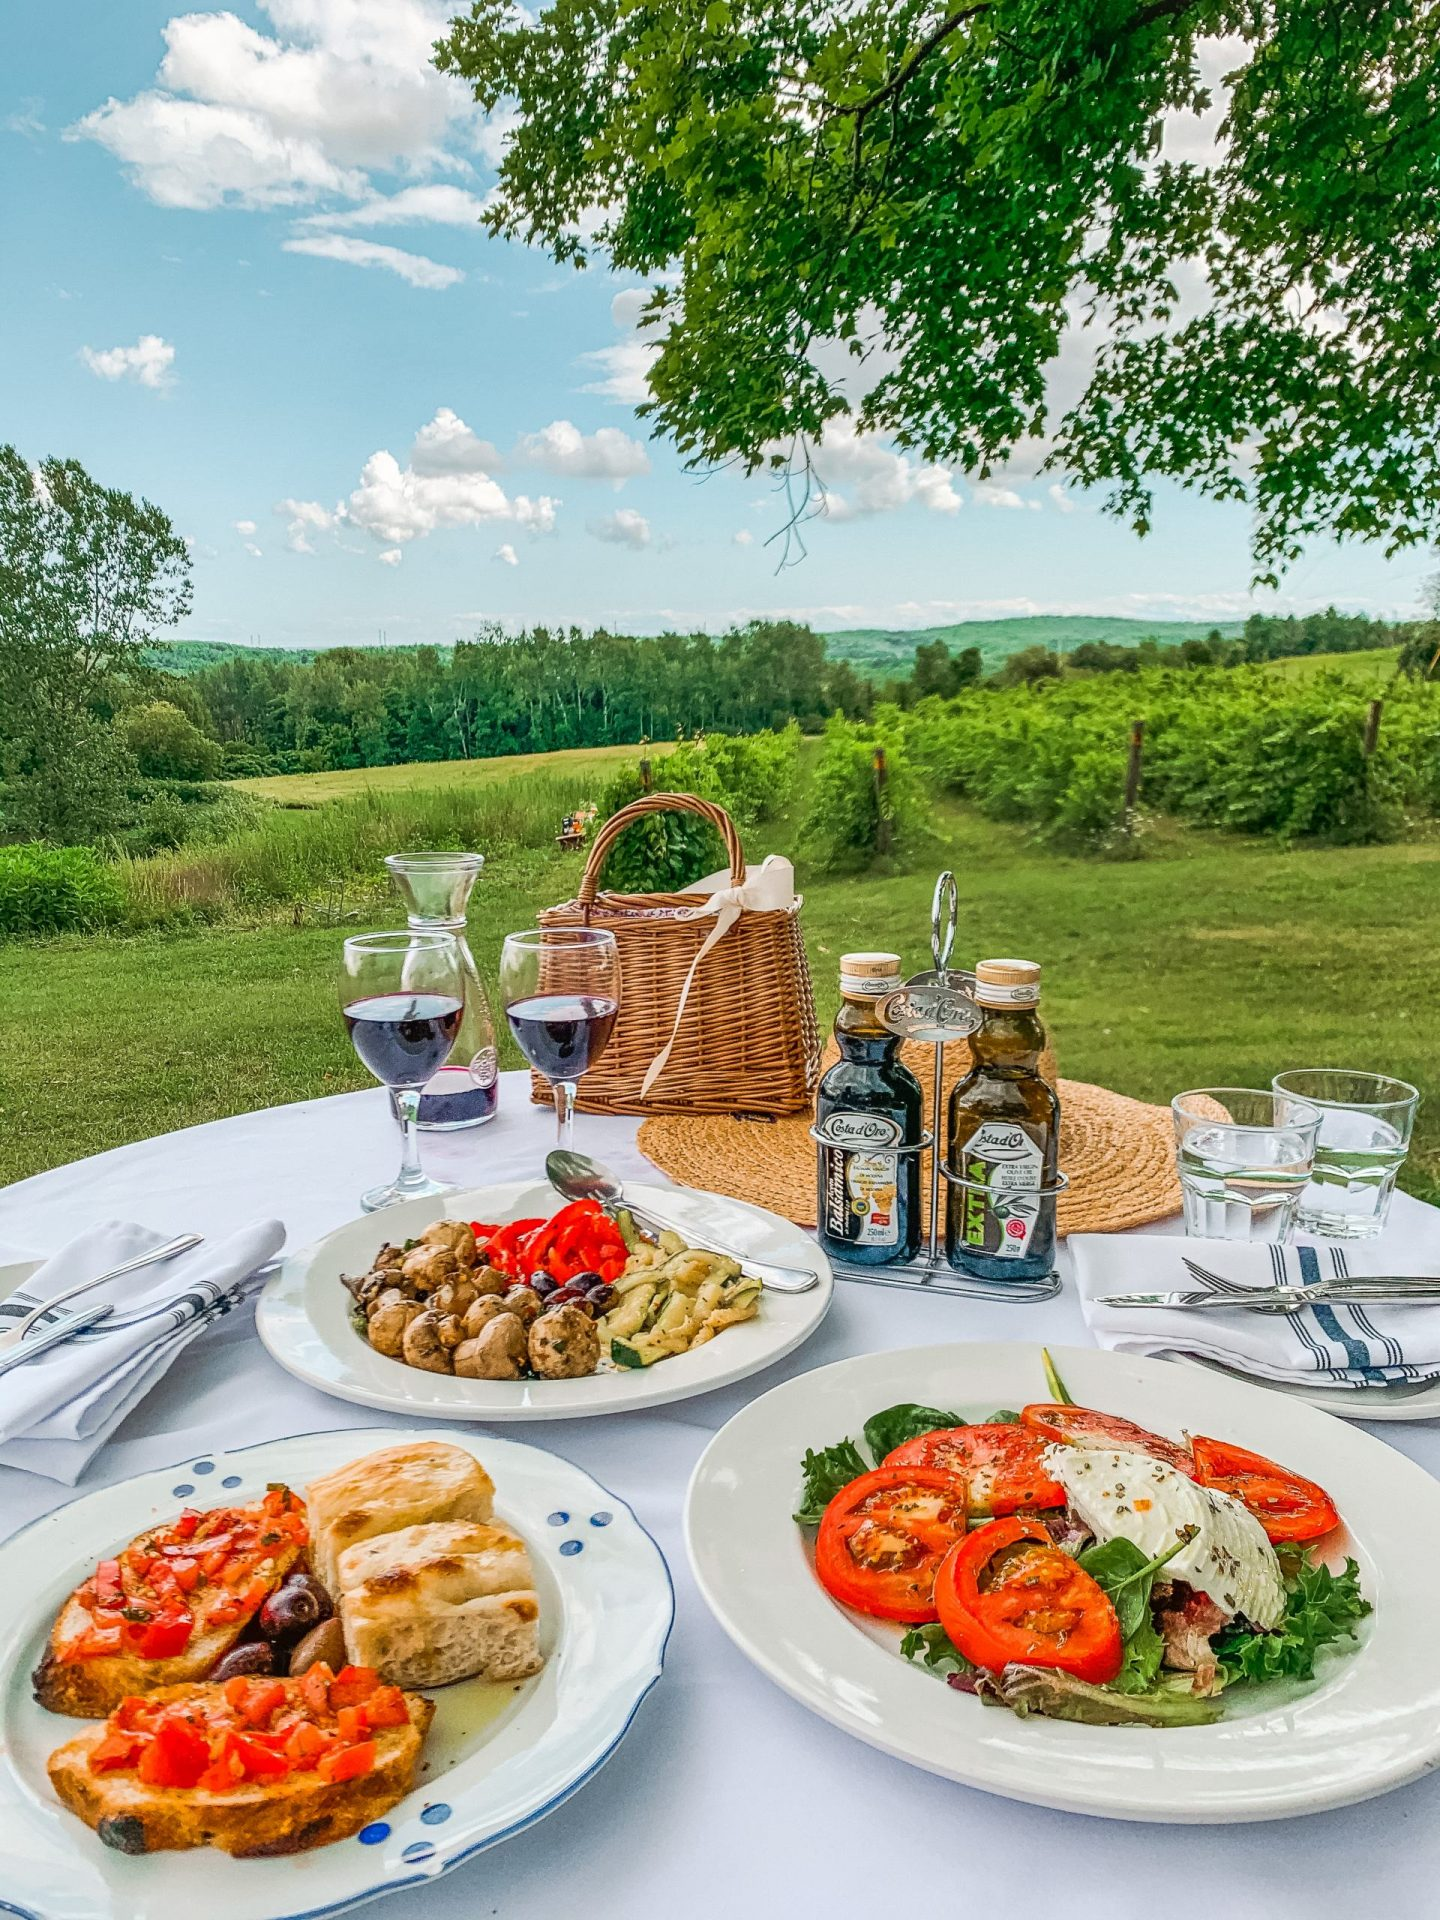 A beautiful and serene Italian lunch At Villa Conti Oak Heights Estate Winery. A short drive from Toronto with stunning views